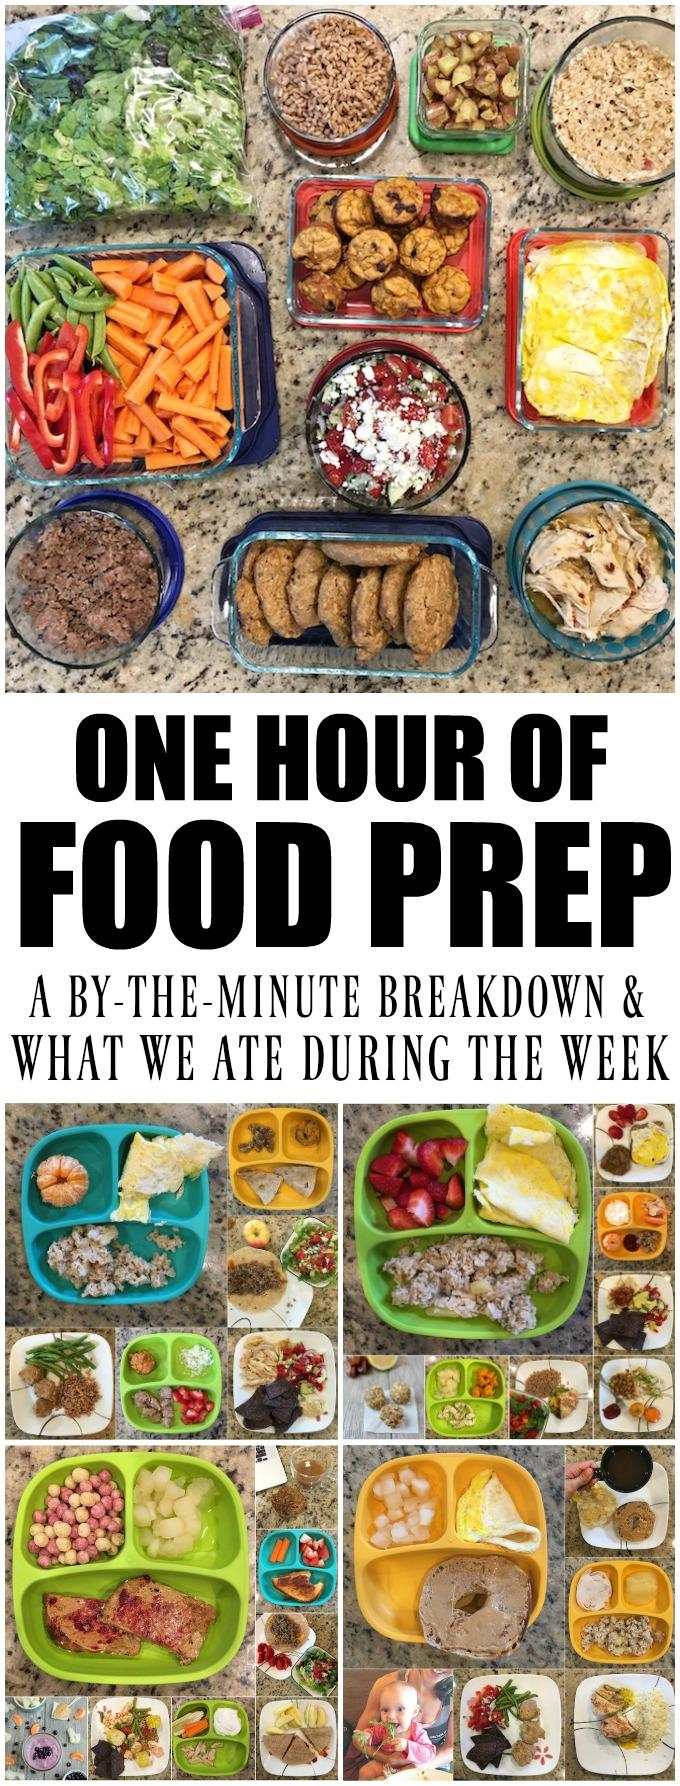 Here's a food prep session breakdown: An in-depth look at what I prepped, the order I did things in and how I got it all done in one hour! Plus a look at the meals we ate during the week.